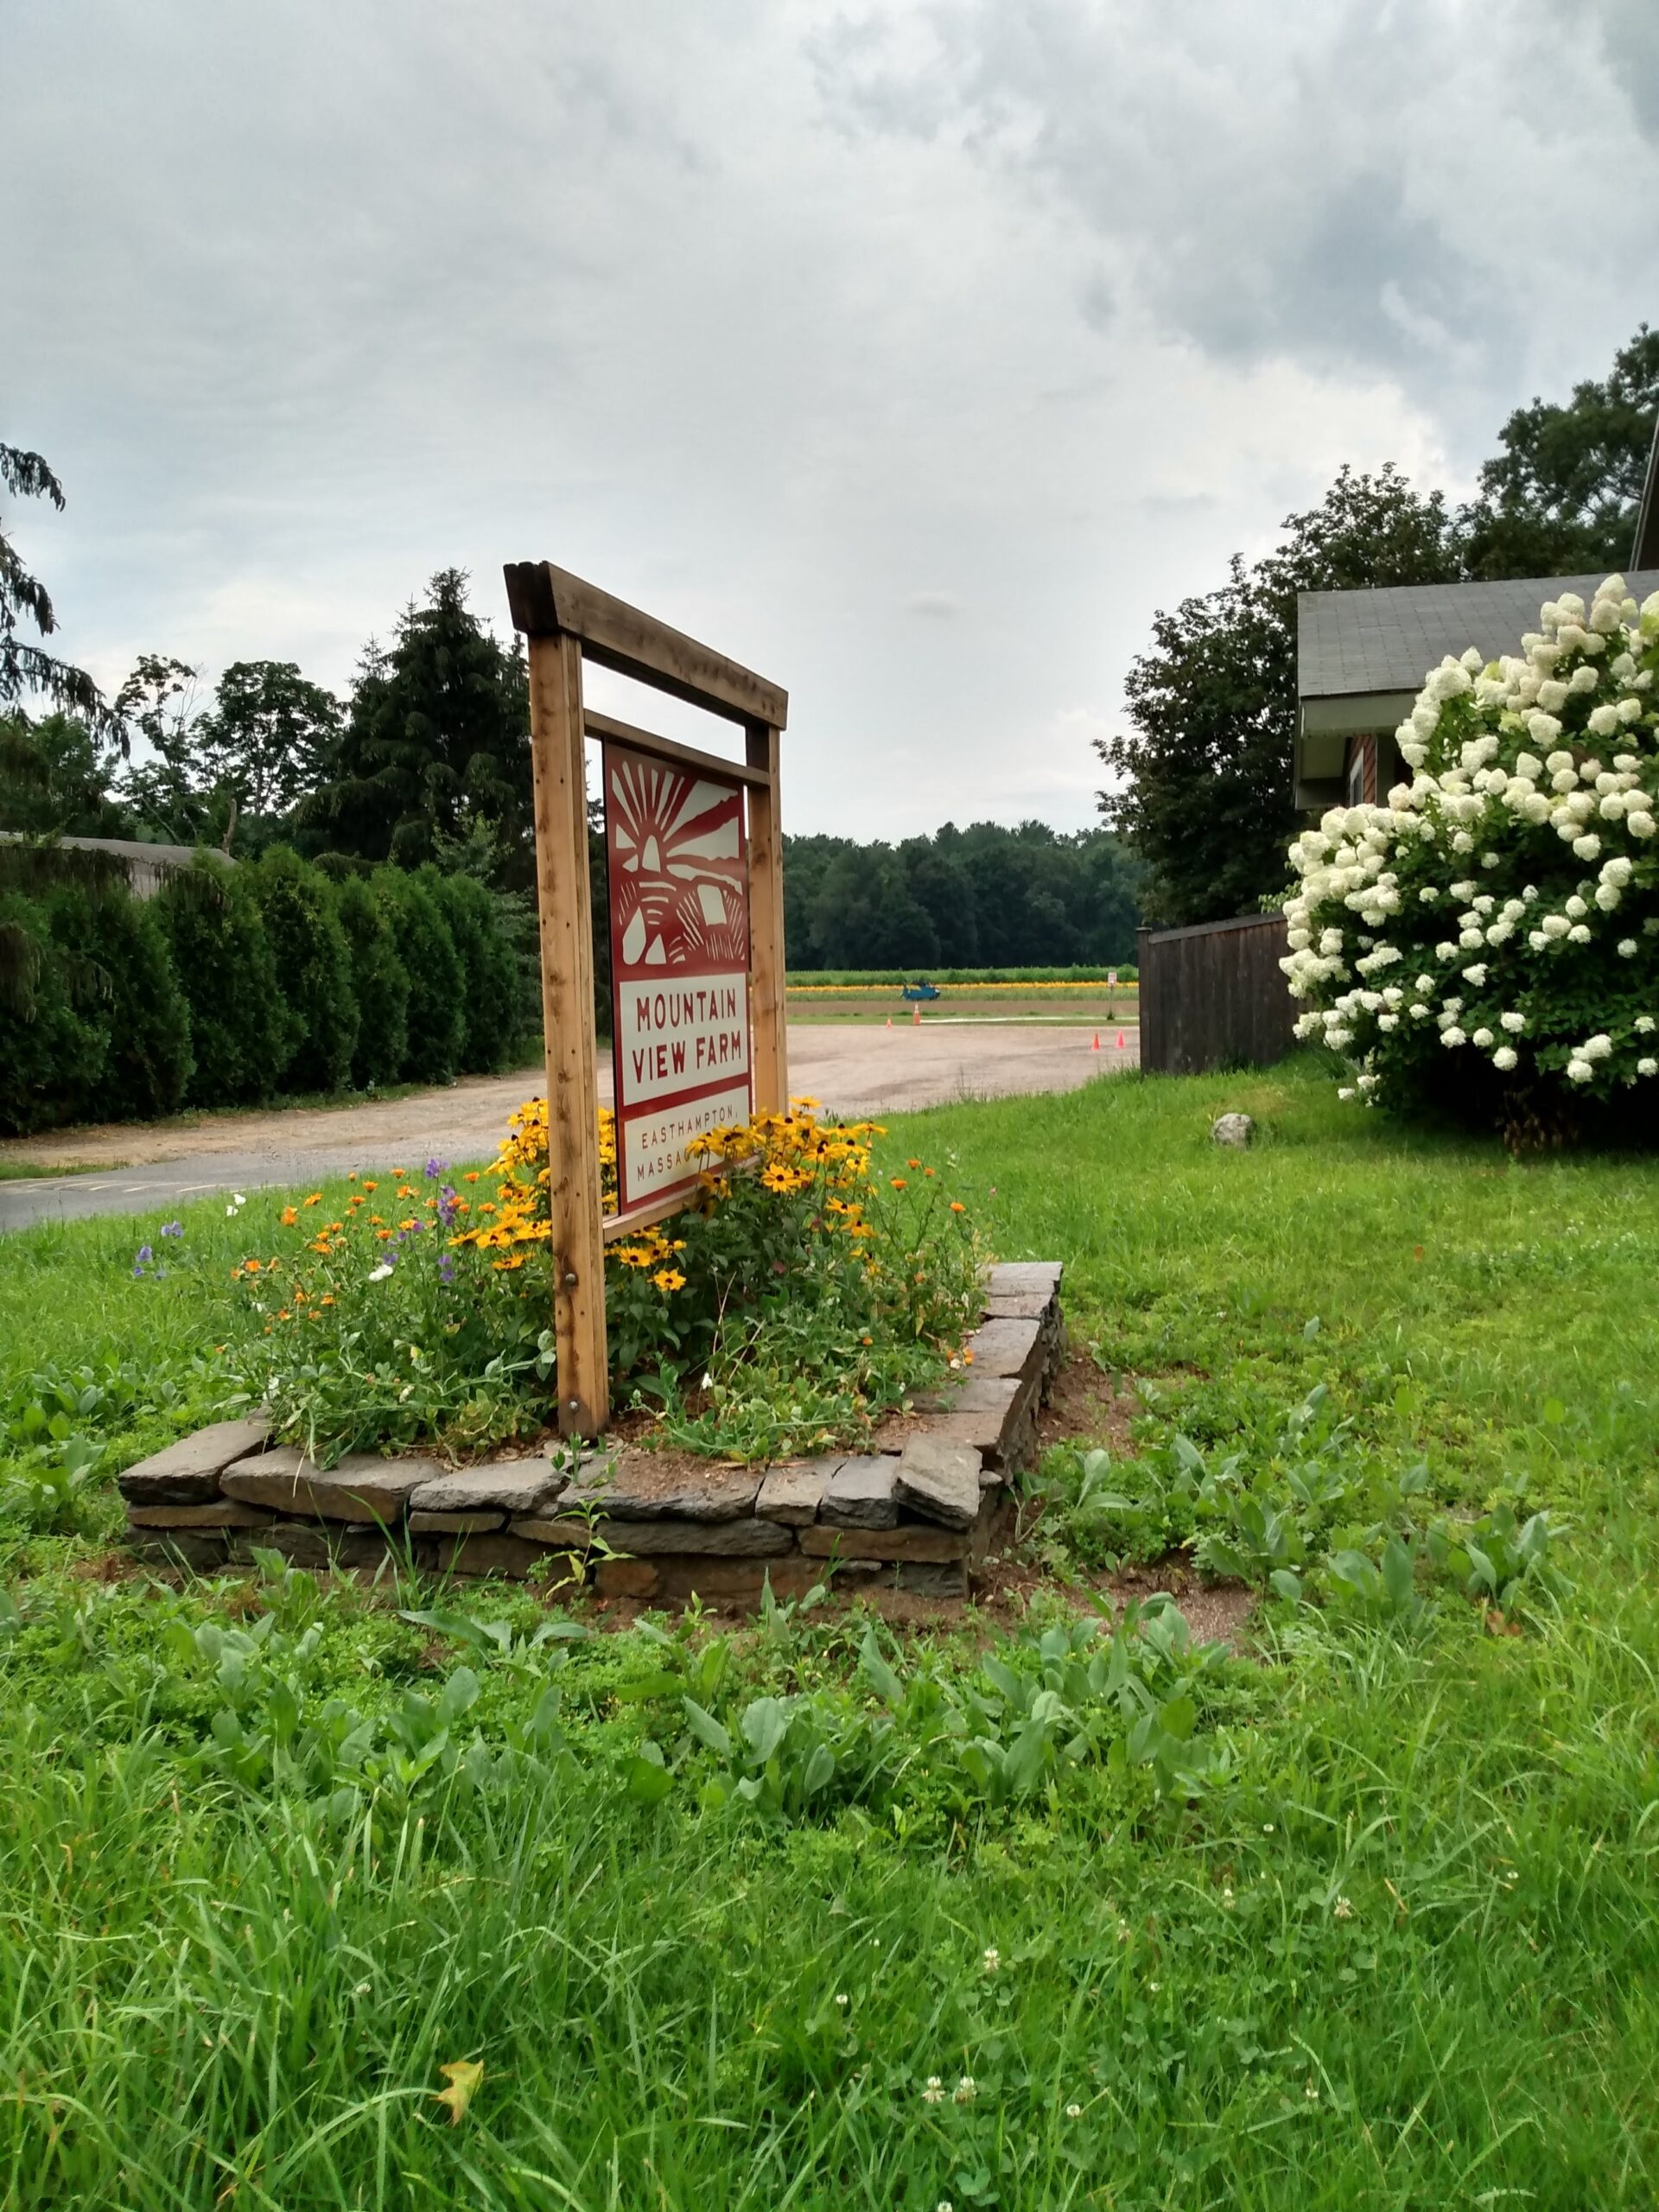 Sign for Mountain View Farm